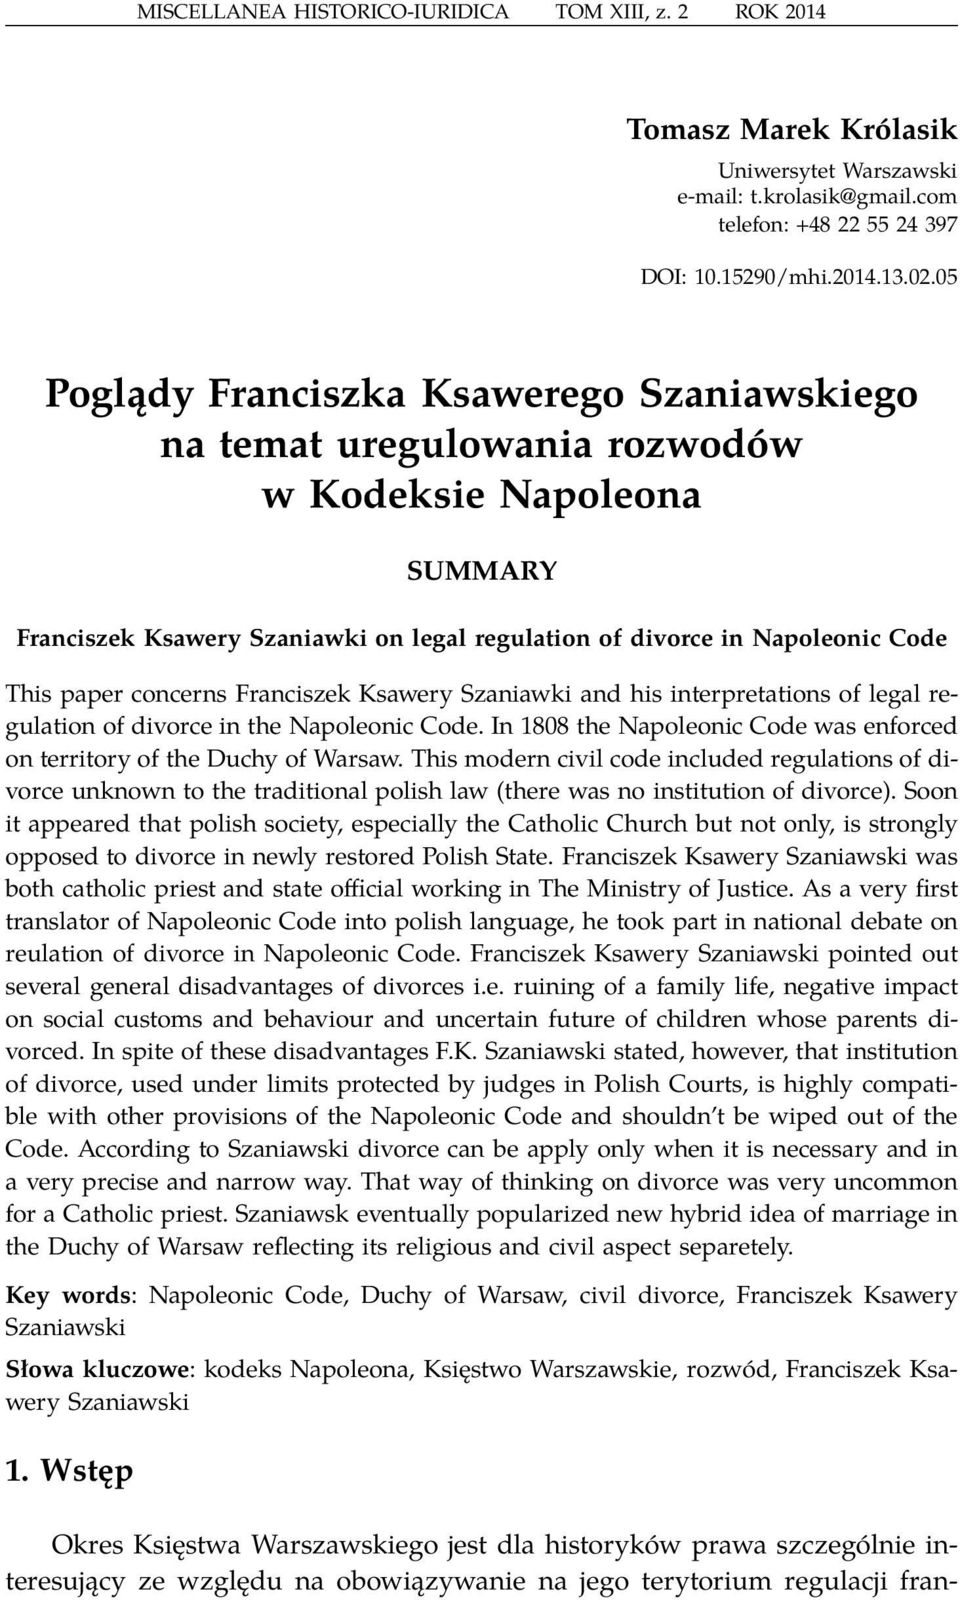 concerns Franciszek Ksawery Szaniawki and his interpretations of legal regulation of divorce in the Napoleonic Code. In 1808 the Napoleonic Code was enforced on territory of the Duchy of Warsaw.